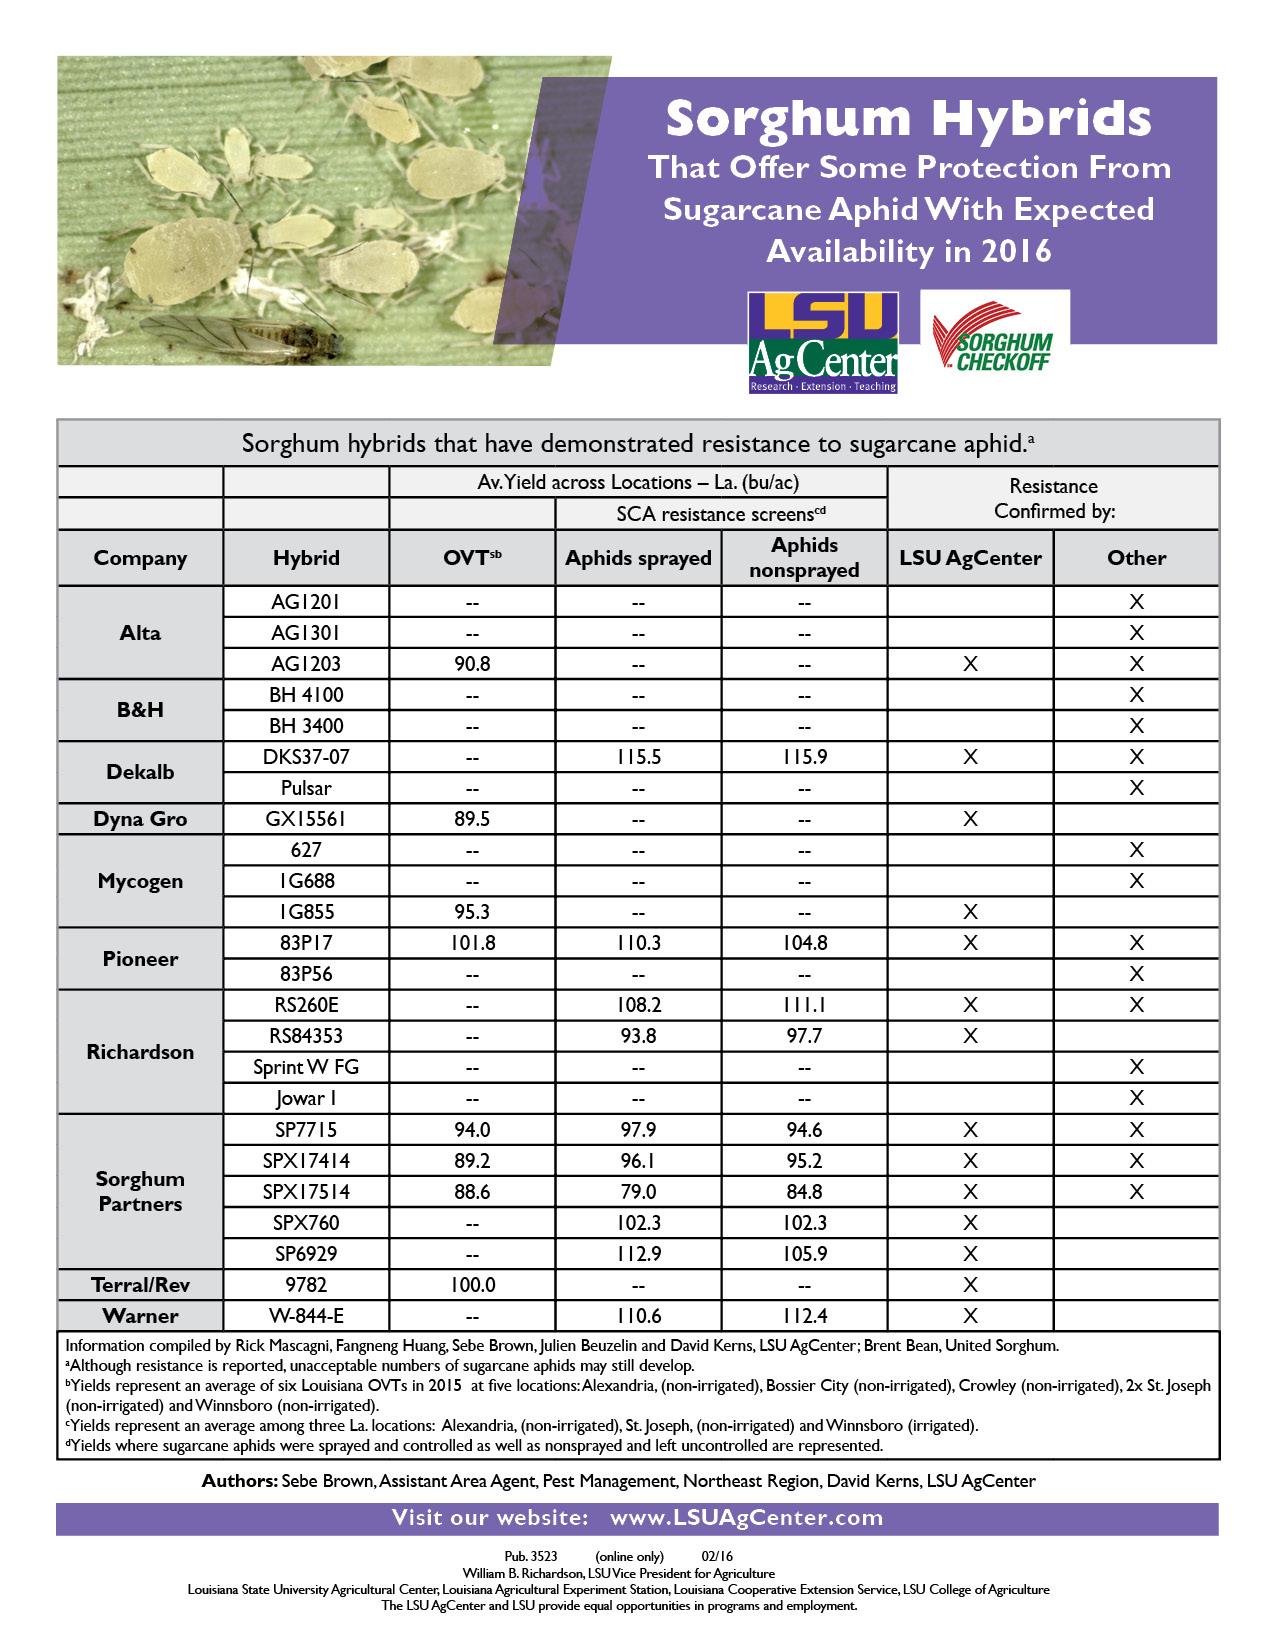 2016 Sorghum Hybrids that Offer Some Protection from Sugarcane Aphid